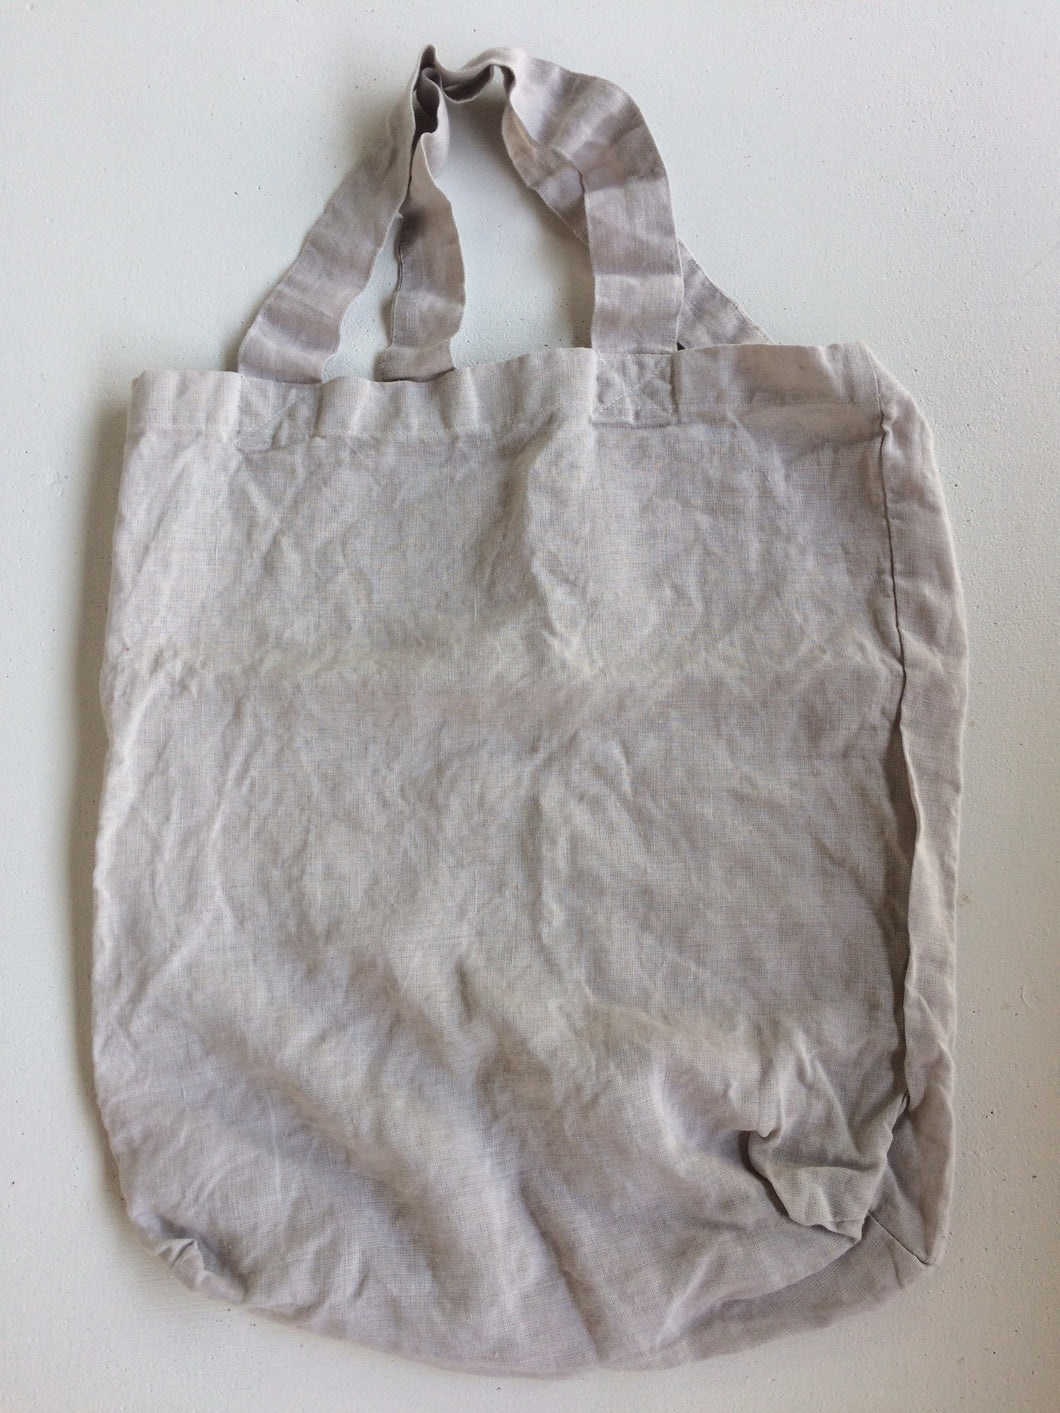 Tallows Linen Tote Bag - French Grey Colour